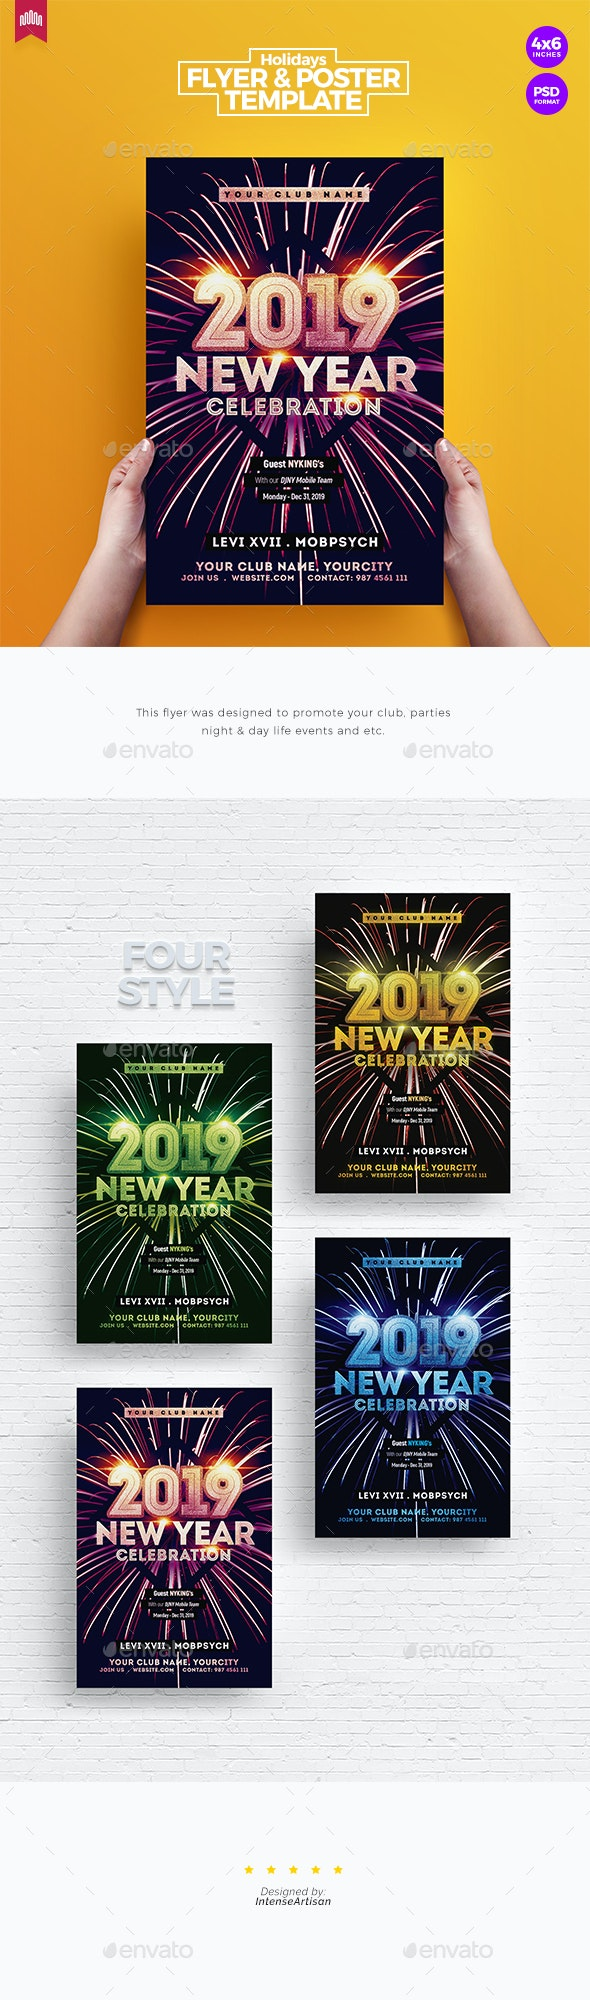 New Year Party - Flyer Template - Holidays Events